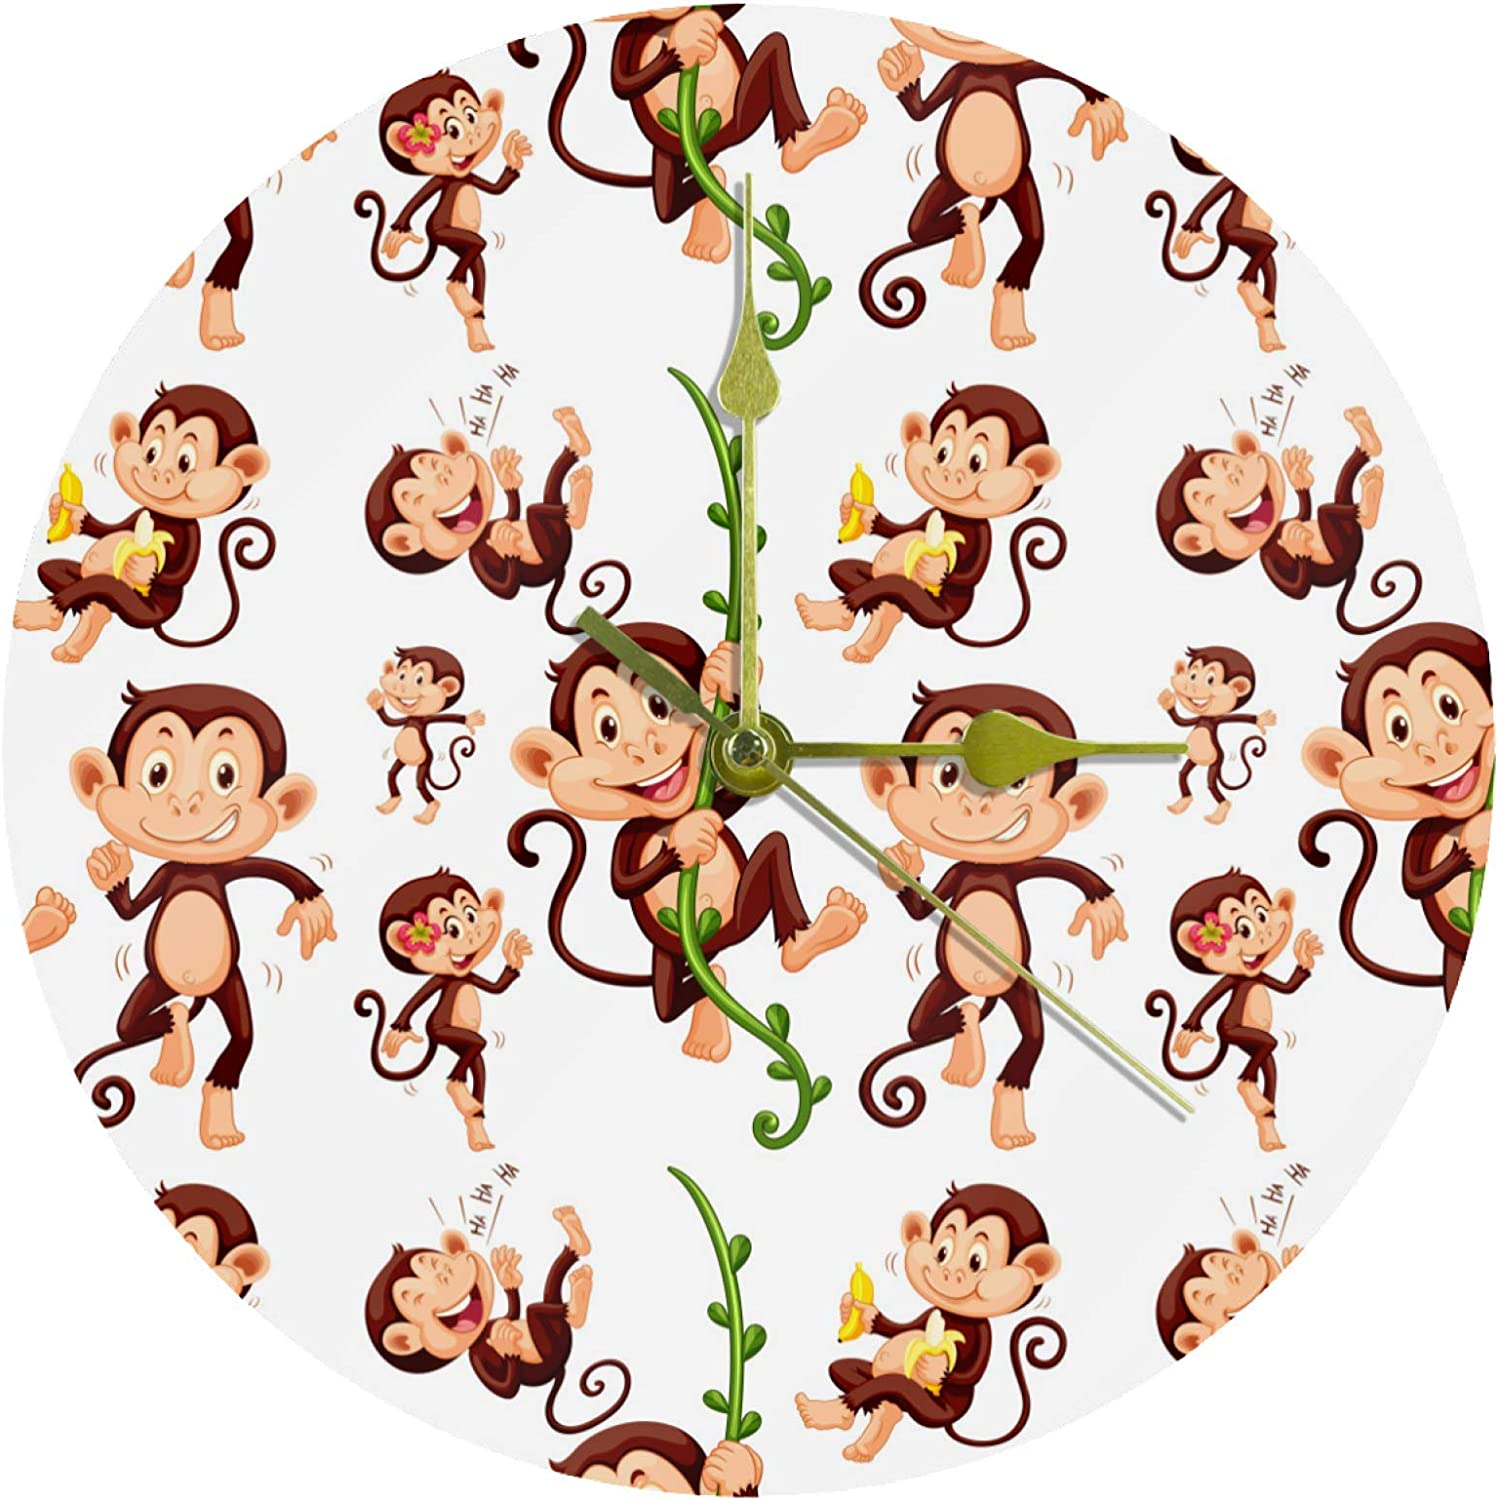 Sock Monkeys Wall Clock Silent Non Ticking - 10 Inch Quality Quartz Battery Operated Round Easy to Hand Home/Office/Classroom/School Clock